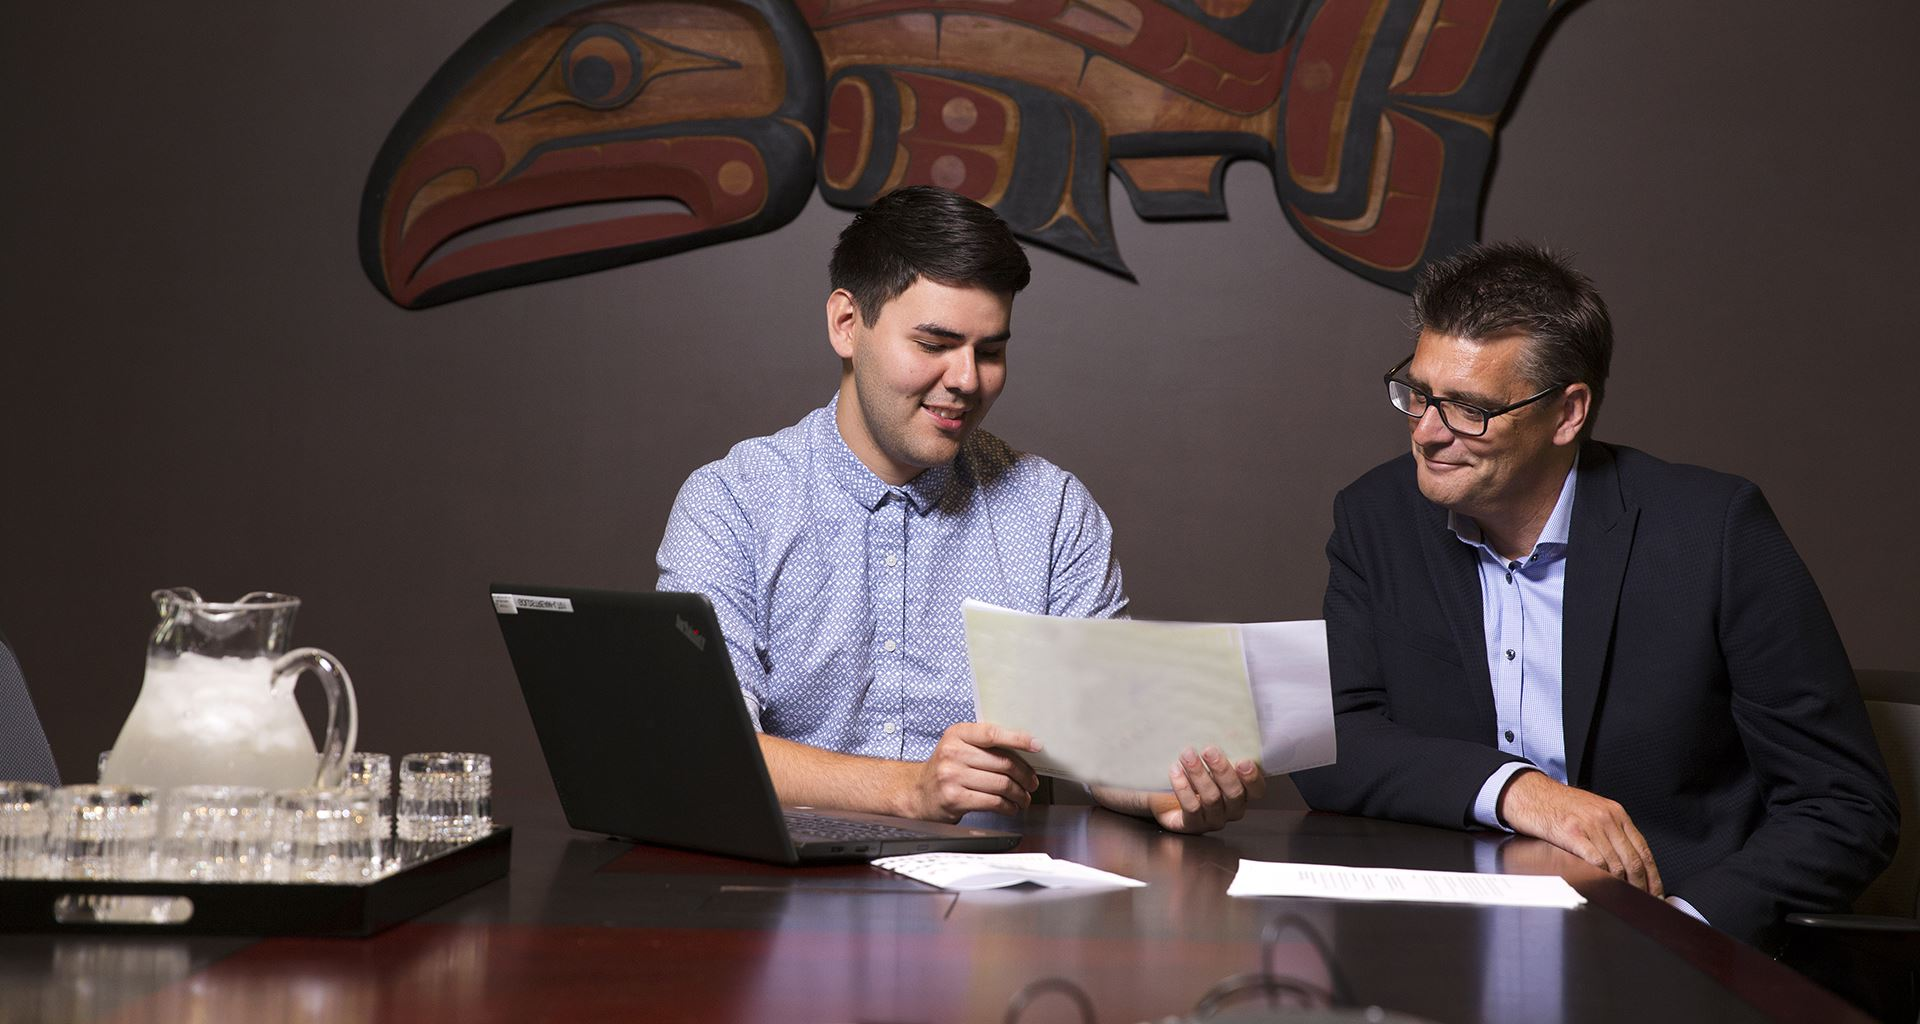 Indigenous student meets an employer in boardroom